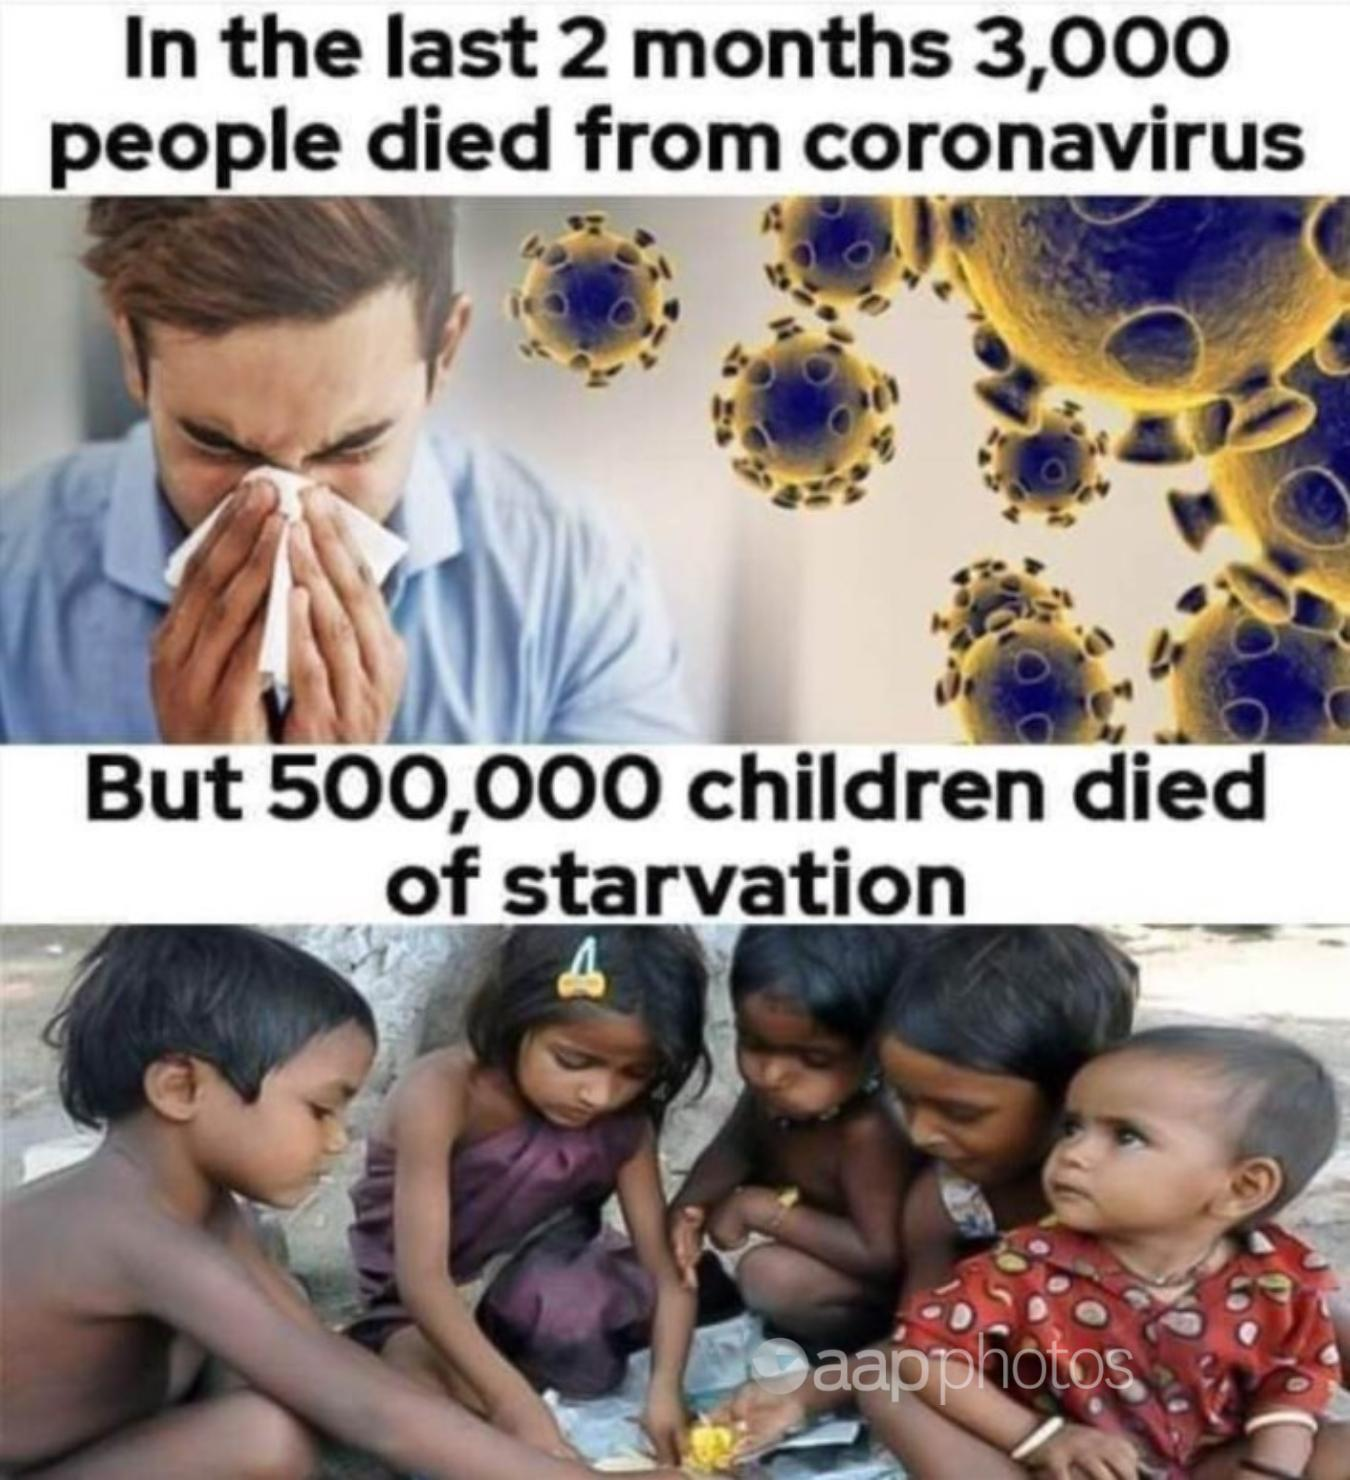 A meme comparing COVID-19 mortality to child starvation deaths.